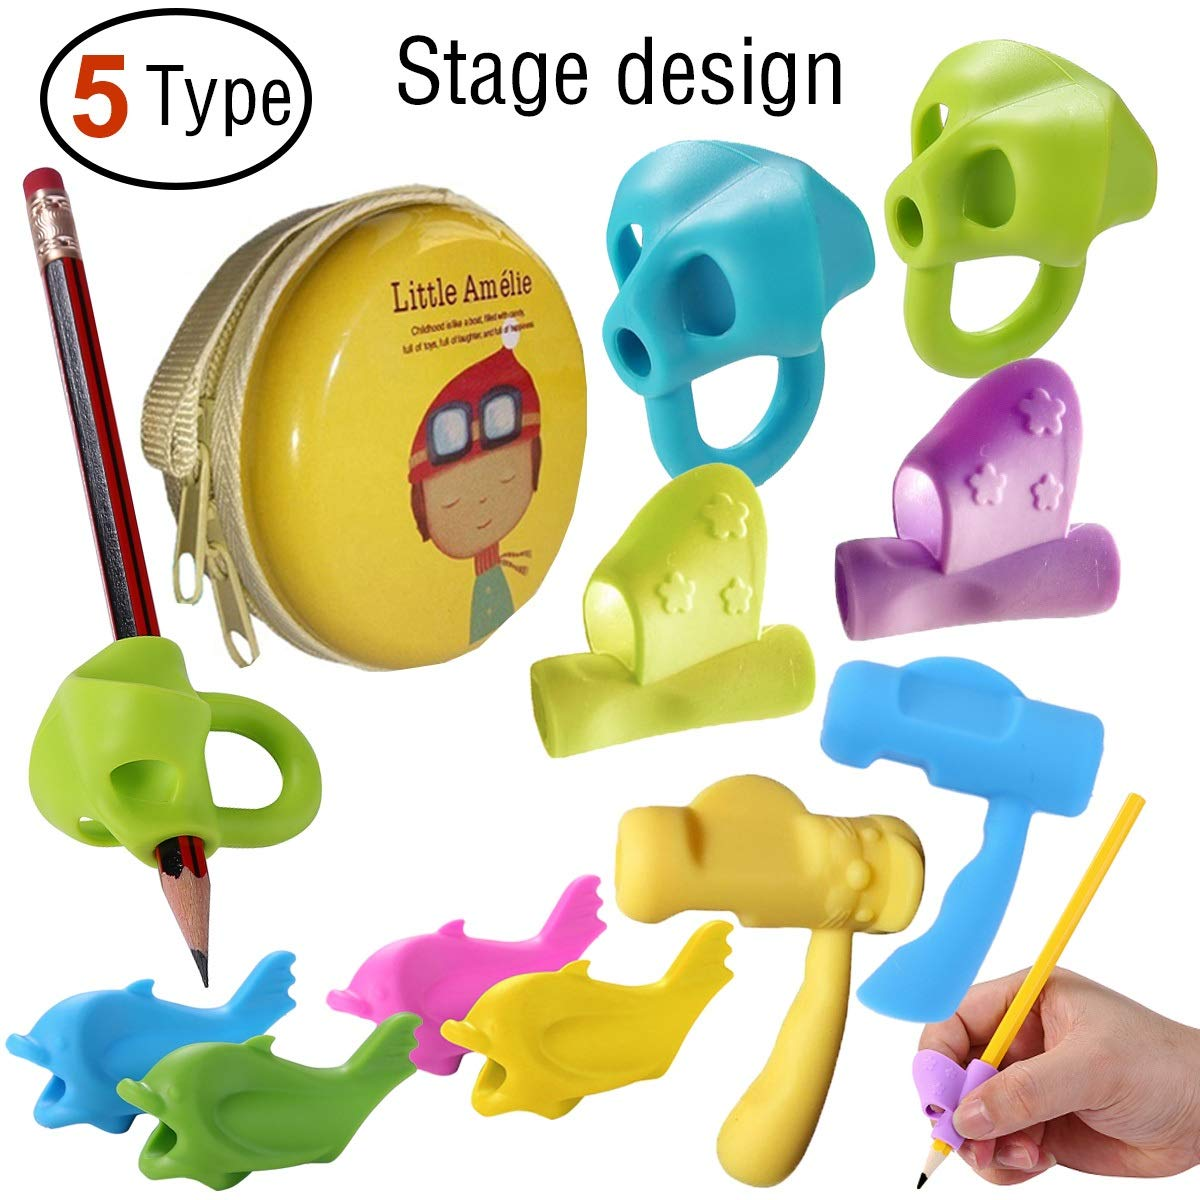 Pencil Grips,Tanbt Pencil Grips for Kids Handwriting Fish Dolphin Writing Training Grip Holder Pen Claw Aid Finger Grip for Kids Toddler Preschooler Kindergarten Handwriting Tracing Writing Correction